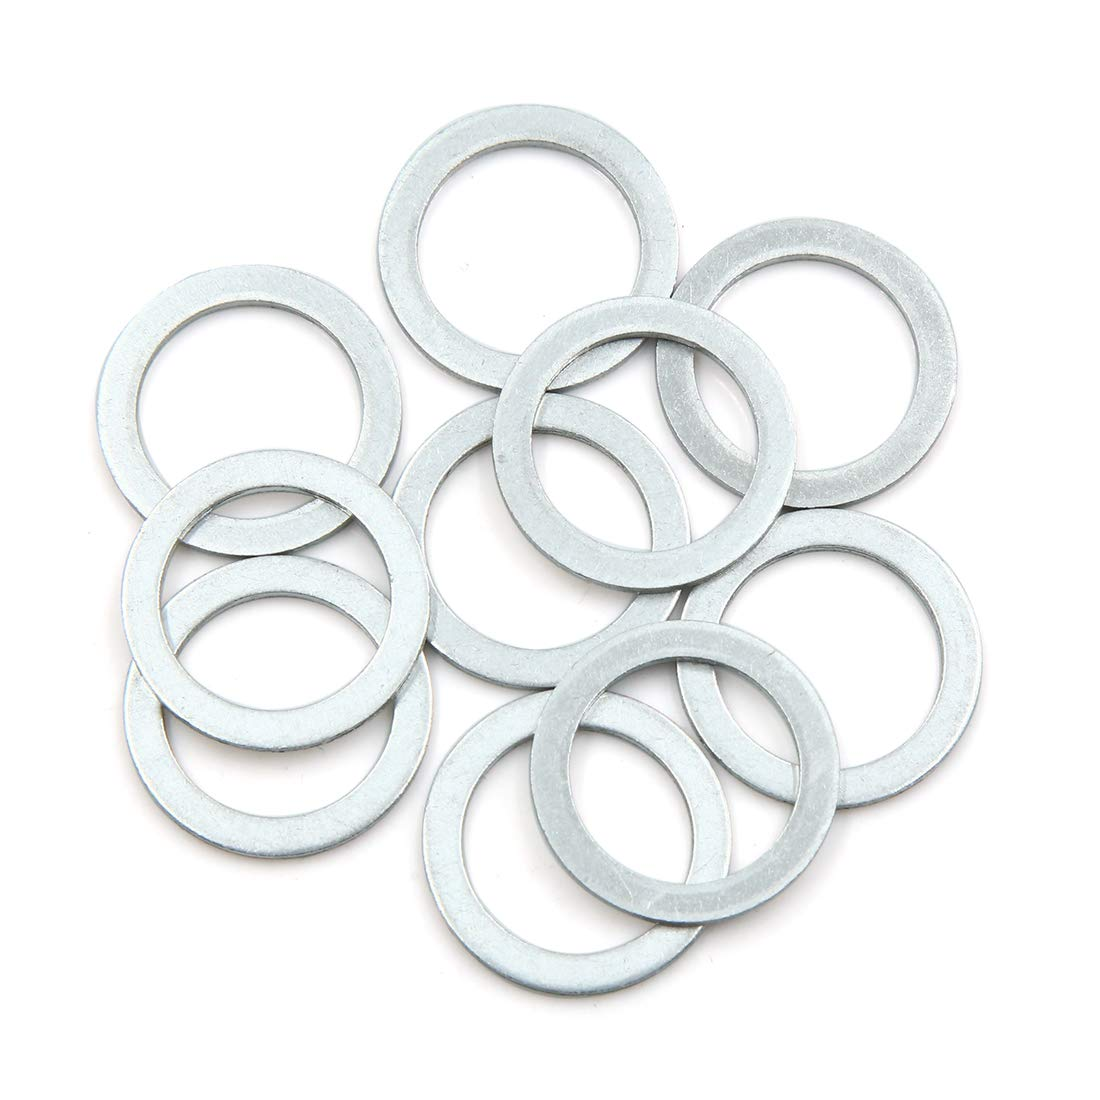 X AUTOHAUX 10pcs Engine Oil Crush Washers Drain Plug Gaskets 20mm ID 28mm OD Aluminum Alloy for Car